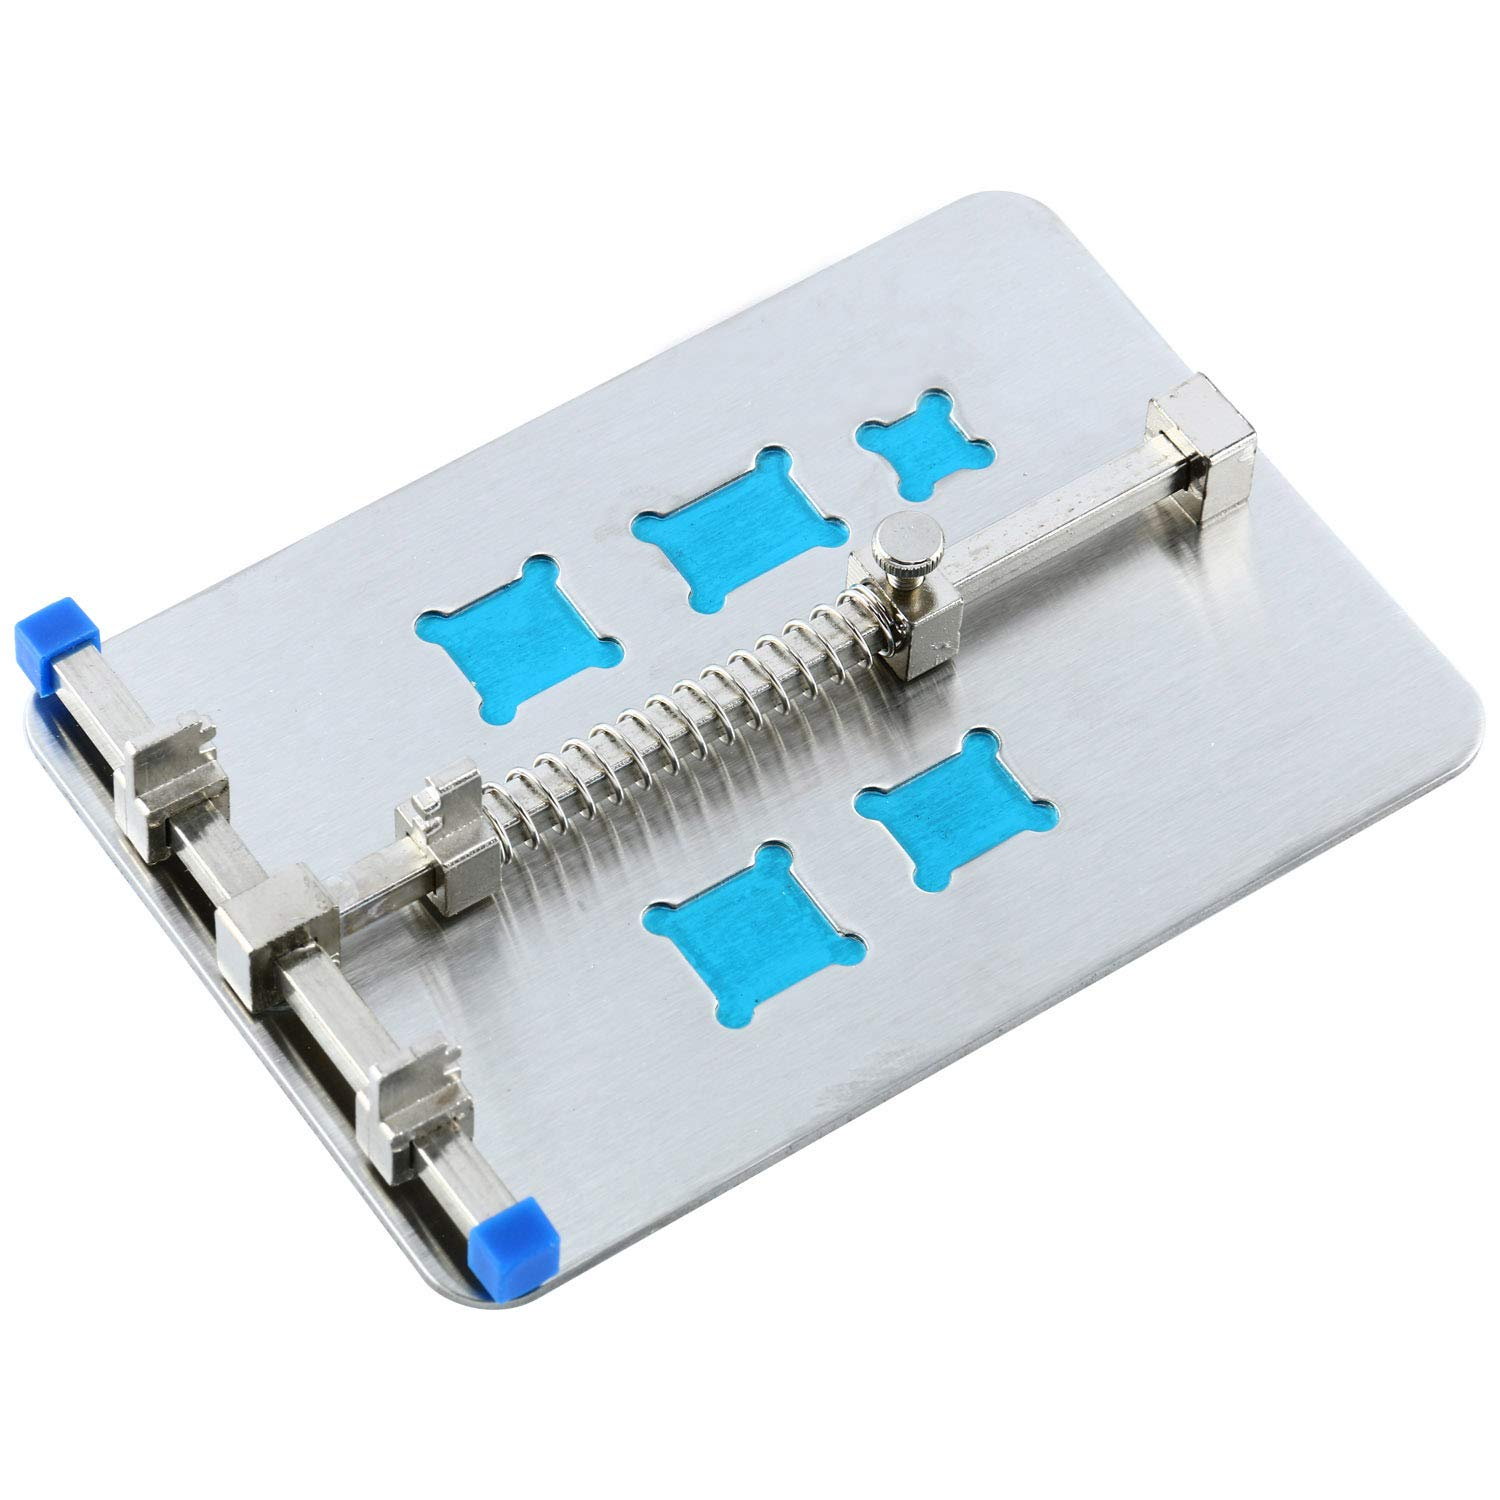 Yaetek Silver Adjustable Mobile Phone Pcb Circuit Board Holder With New Repairing Repair Tool For 5 Kinds Of Ic Grooves And Soldering Tools Home Improvement